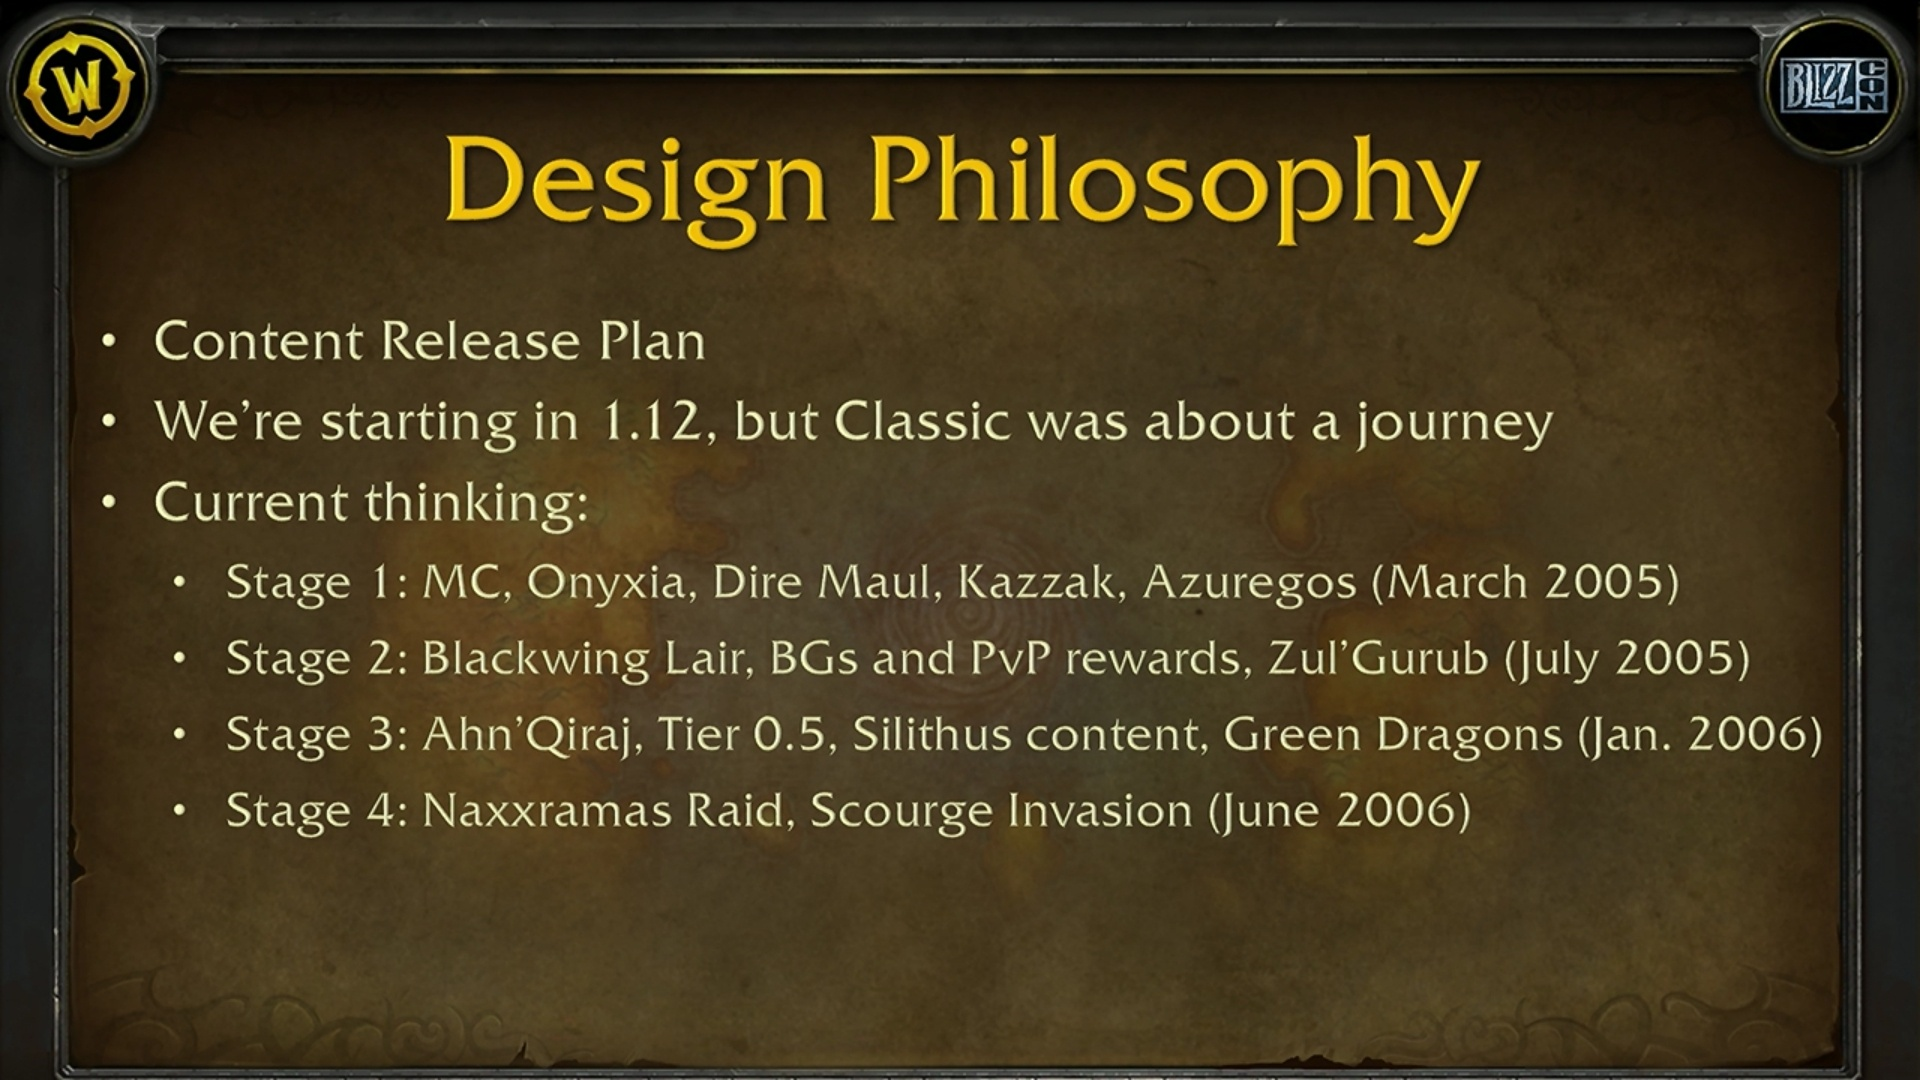 6c4ef726 The Classic WoW panel at BlizzCon 2018 revealed that Classic will have  staged content unlocks, opening raids, dungeons, and other features over  time.